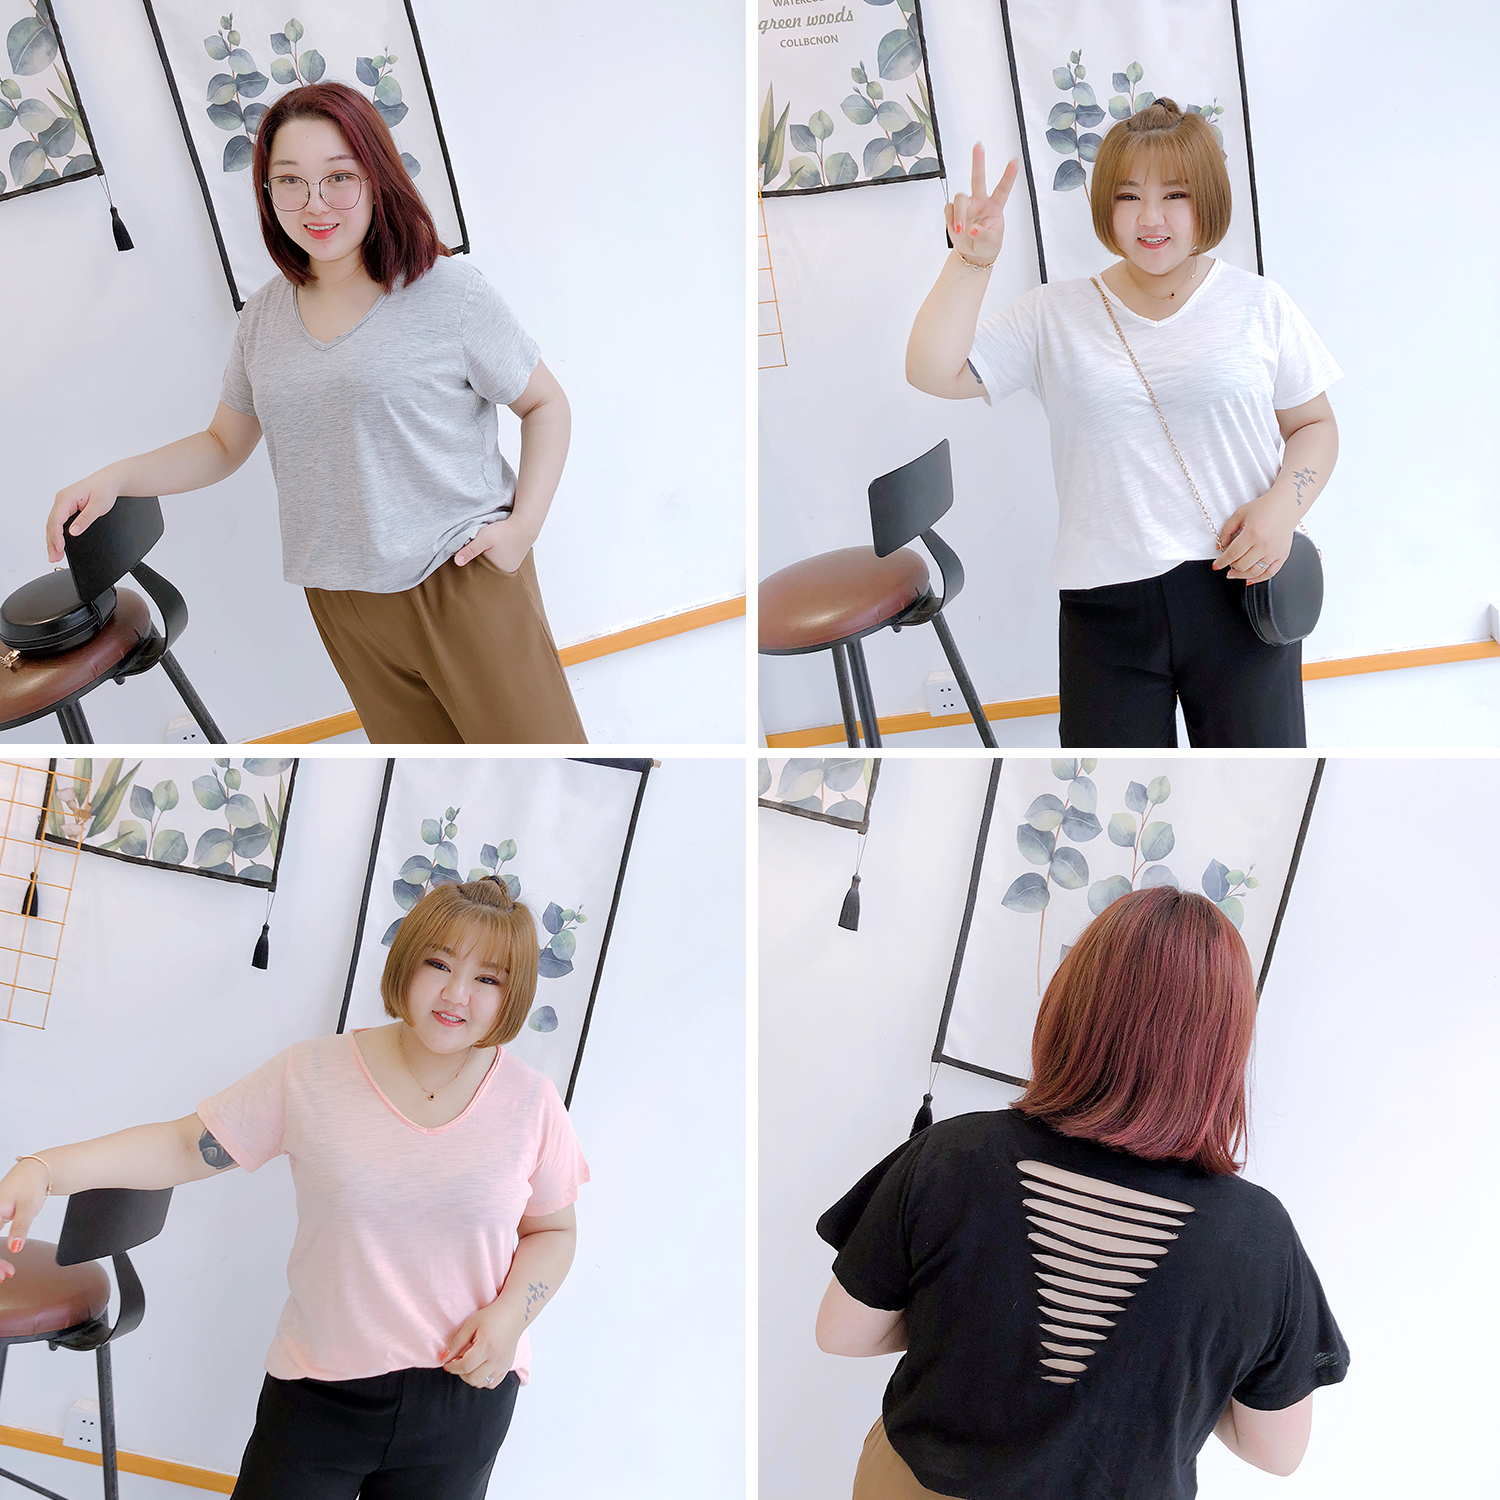 2018 Summer Wear, Slubby Cotton, Loose And Multicolored Stripe, Heavy Clothes, Mm Bottoming Shirt, Short Sleeves, V T-shirt, Ext